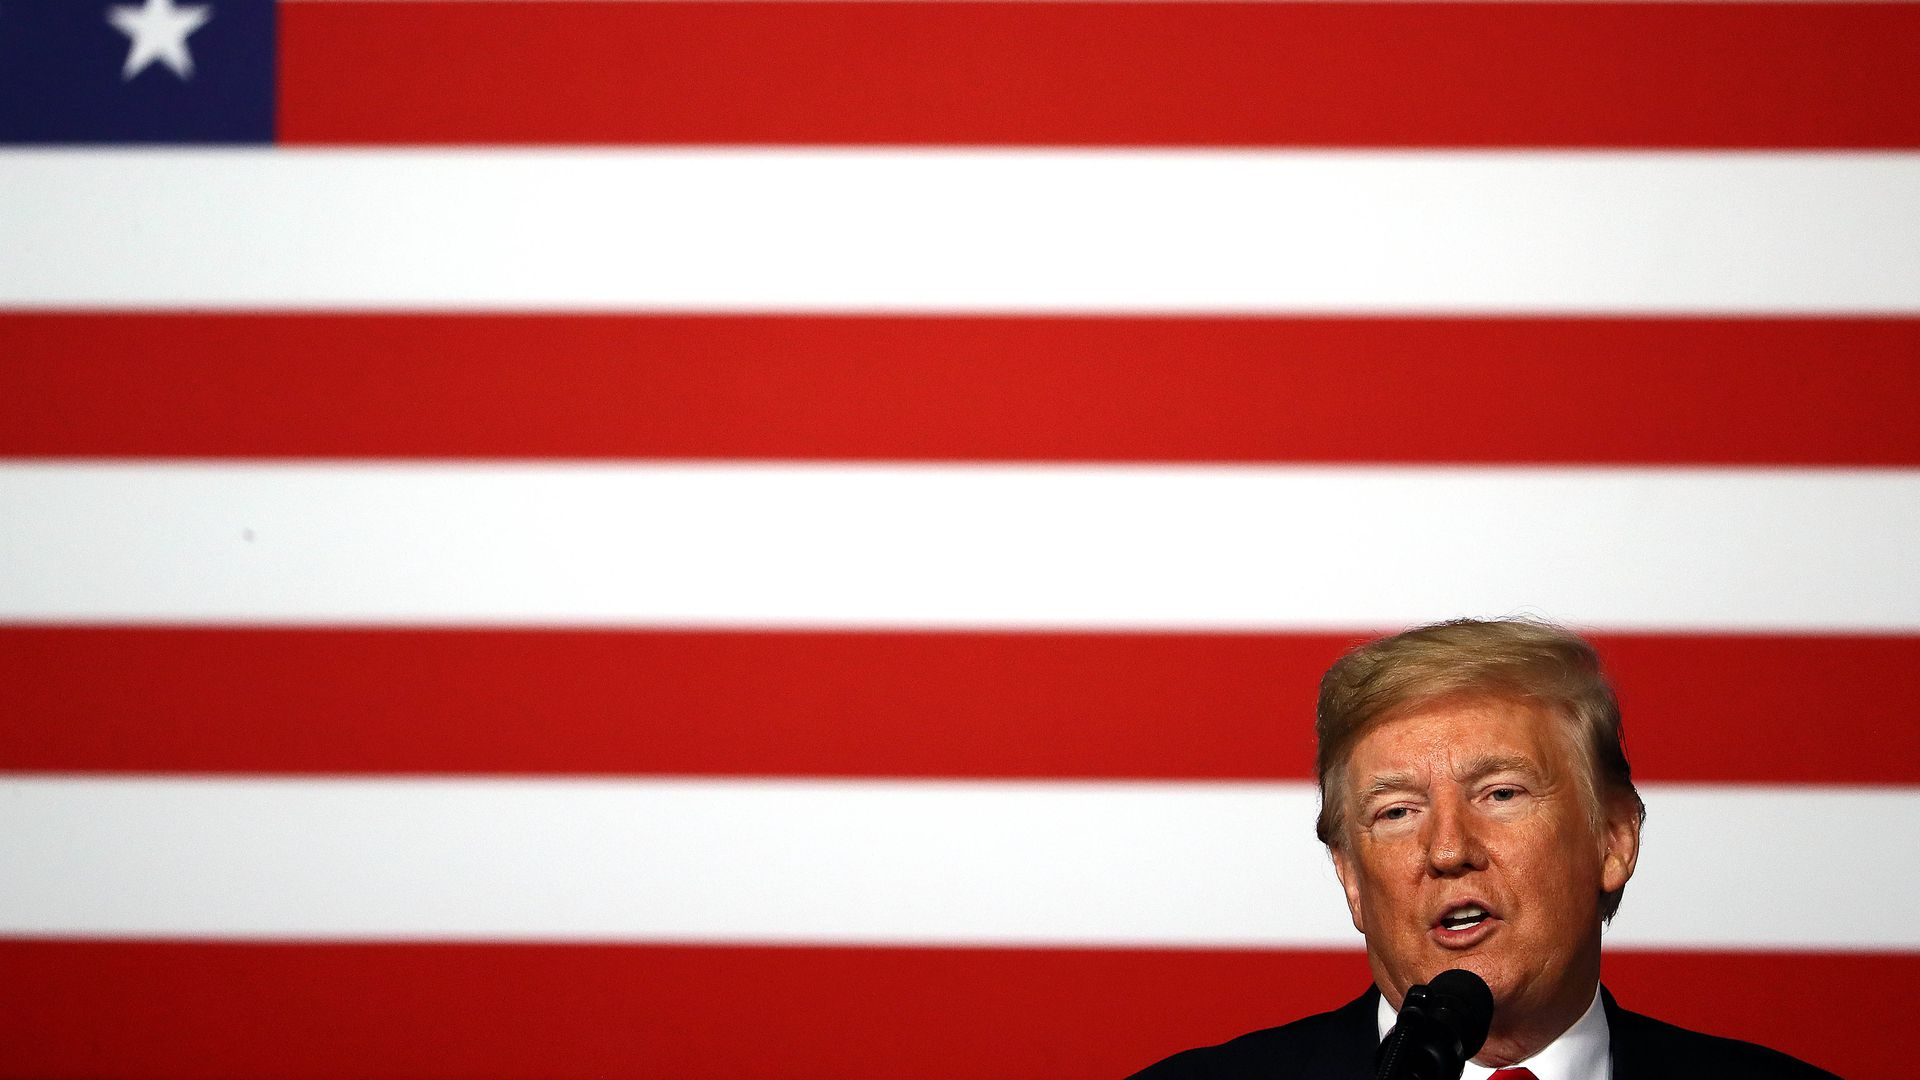 Trump with flag background